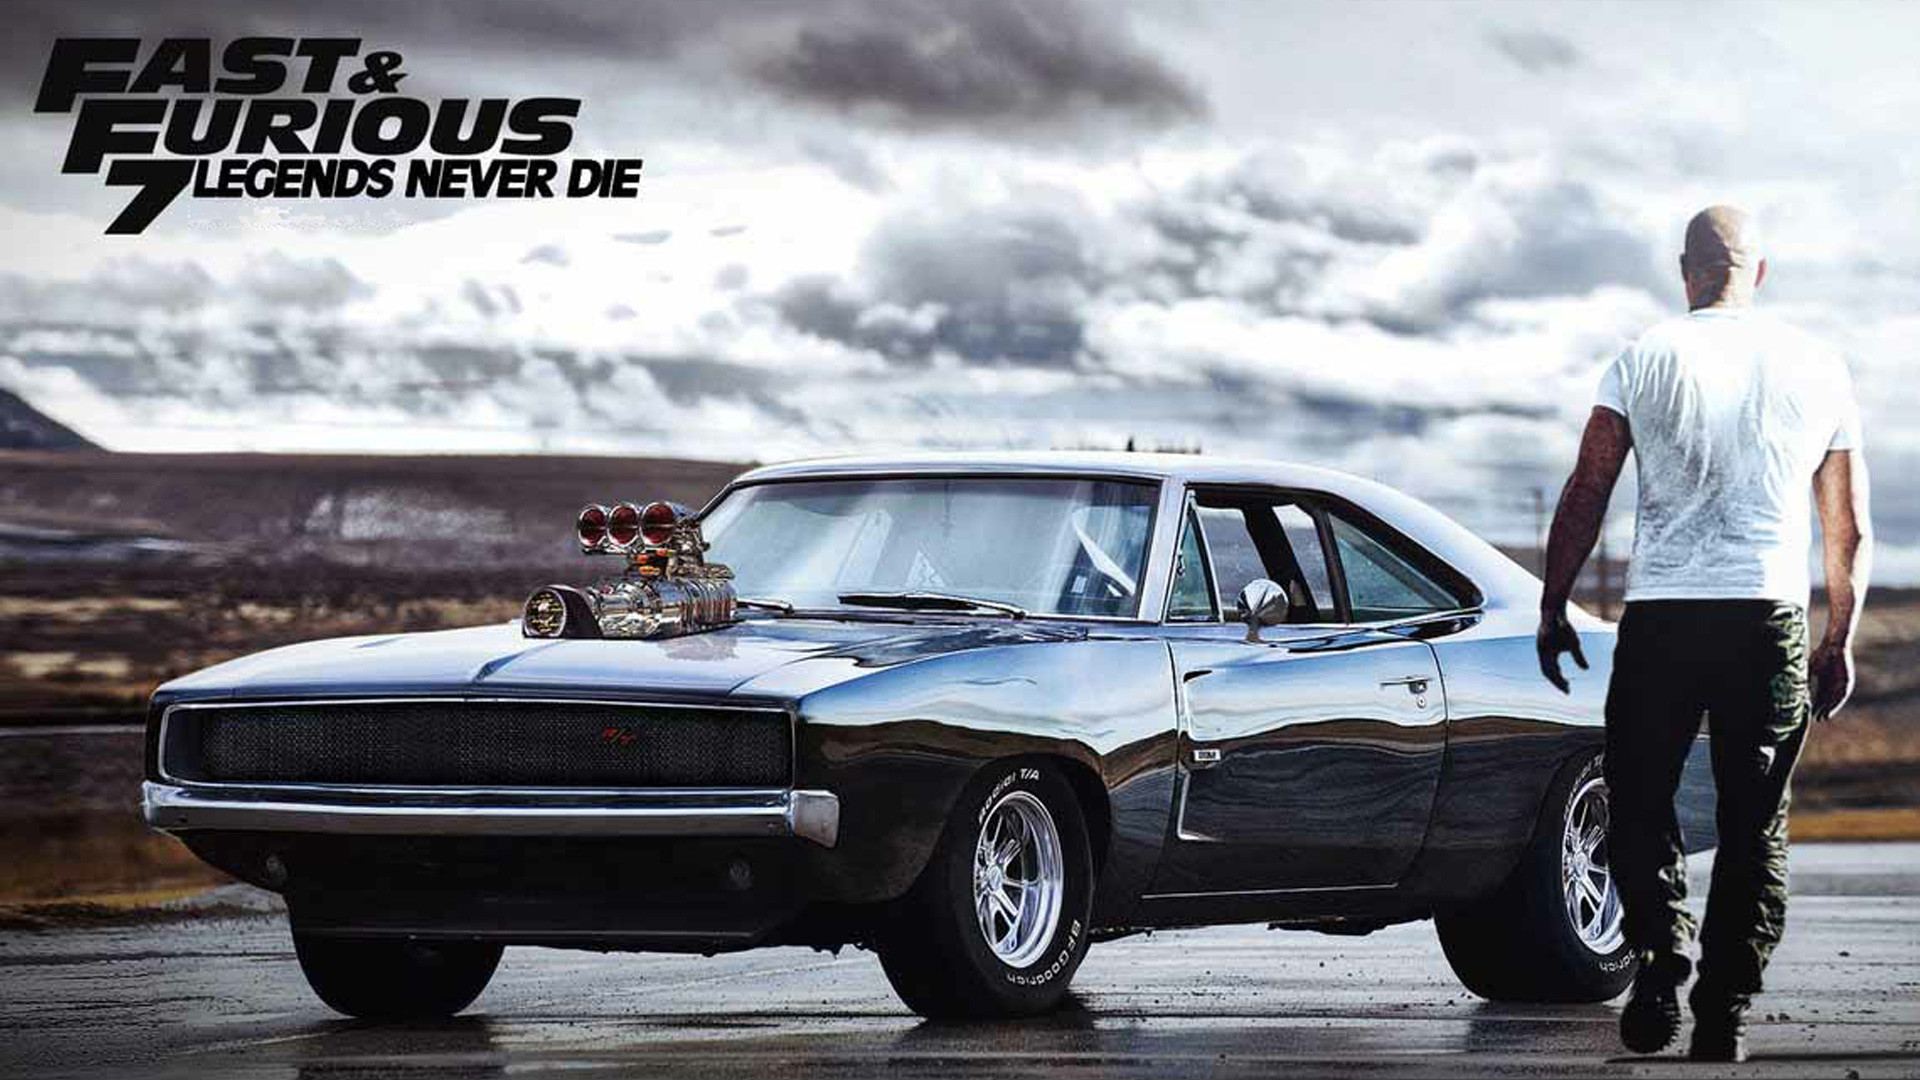 Fast and furious 7 car Wallpaper – | wallpapers hd | Pinterest | Car  wallpapers and Cars